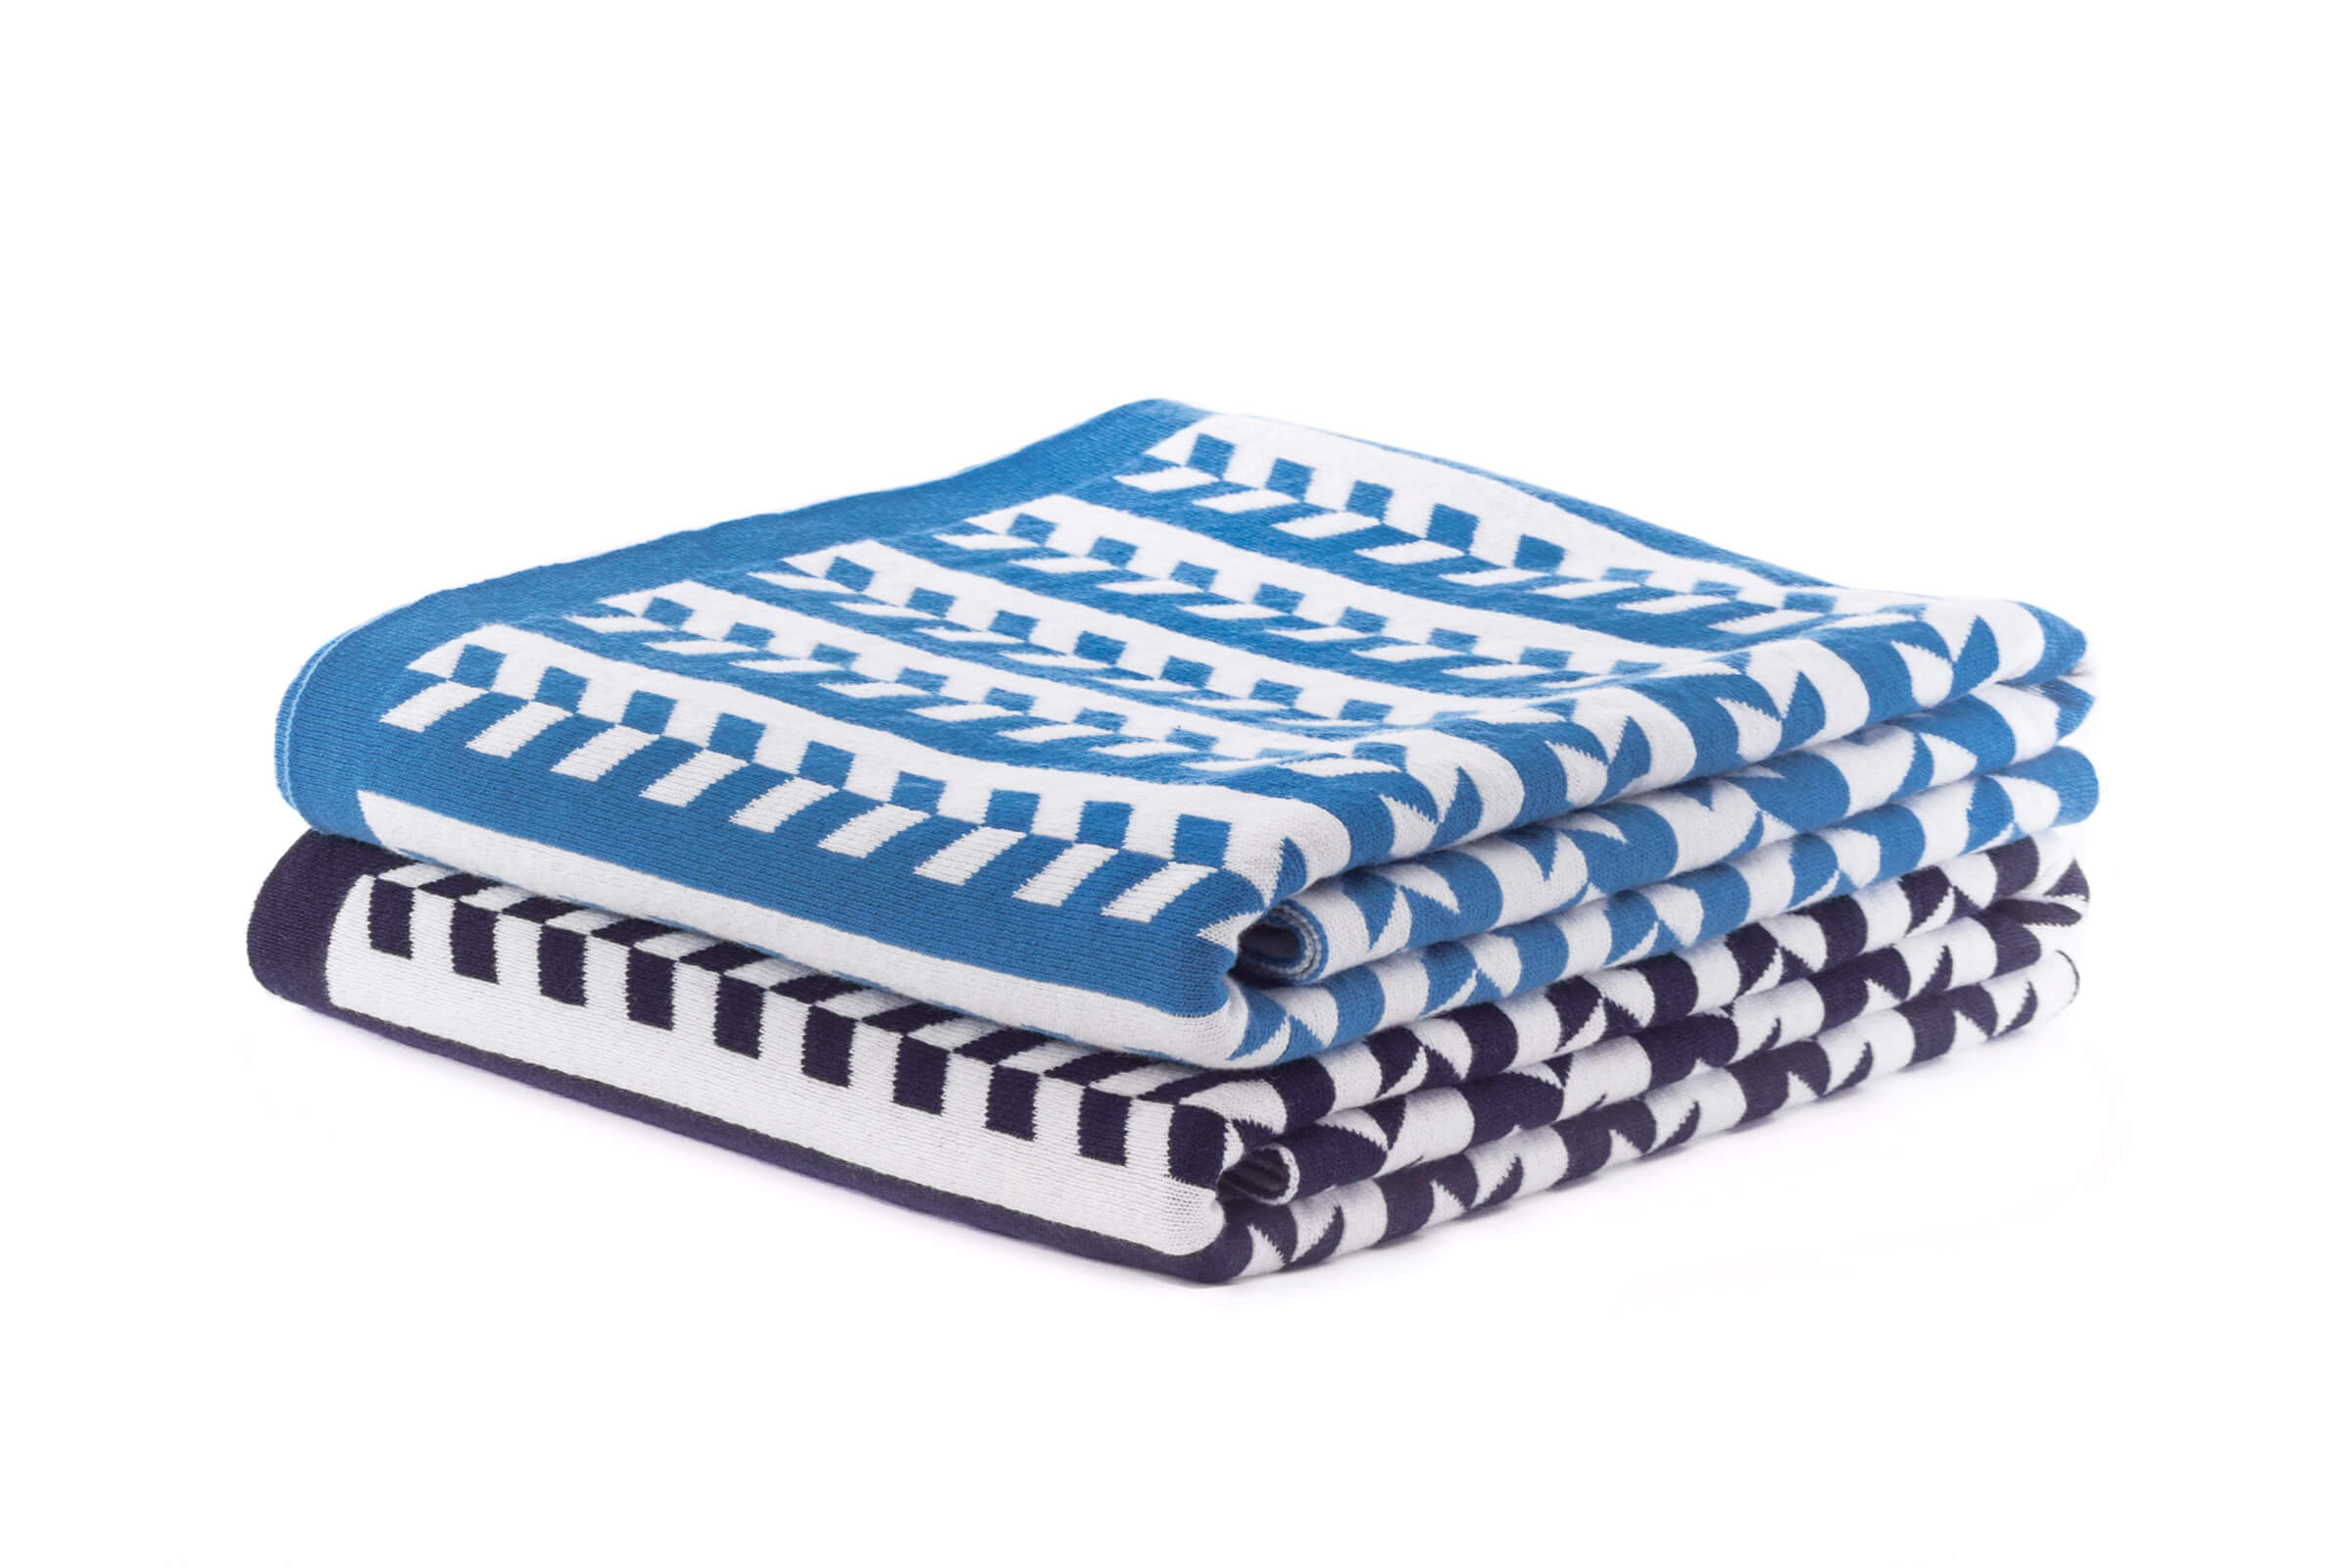 Local Heroes - Jennifer Kent - Transit Travel Blanket in Navy and Skye